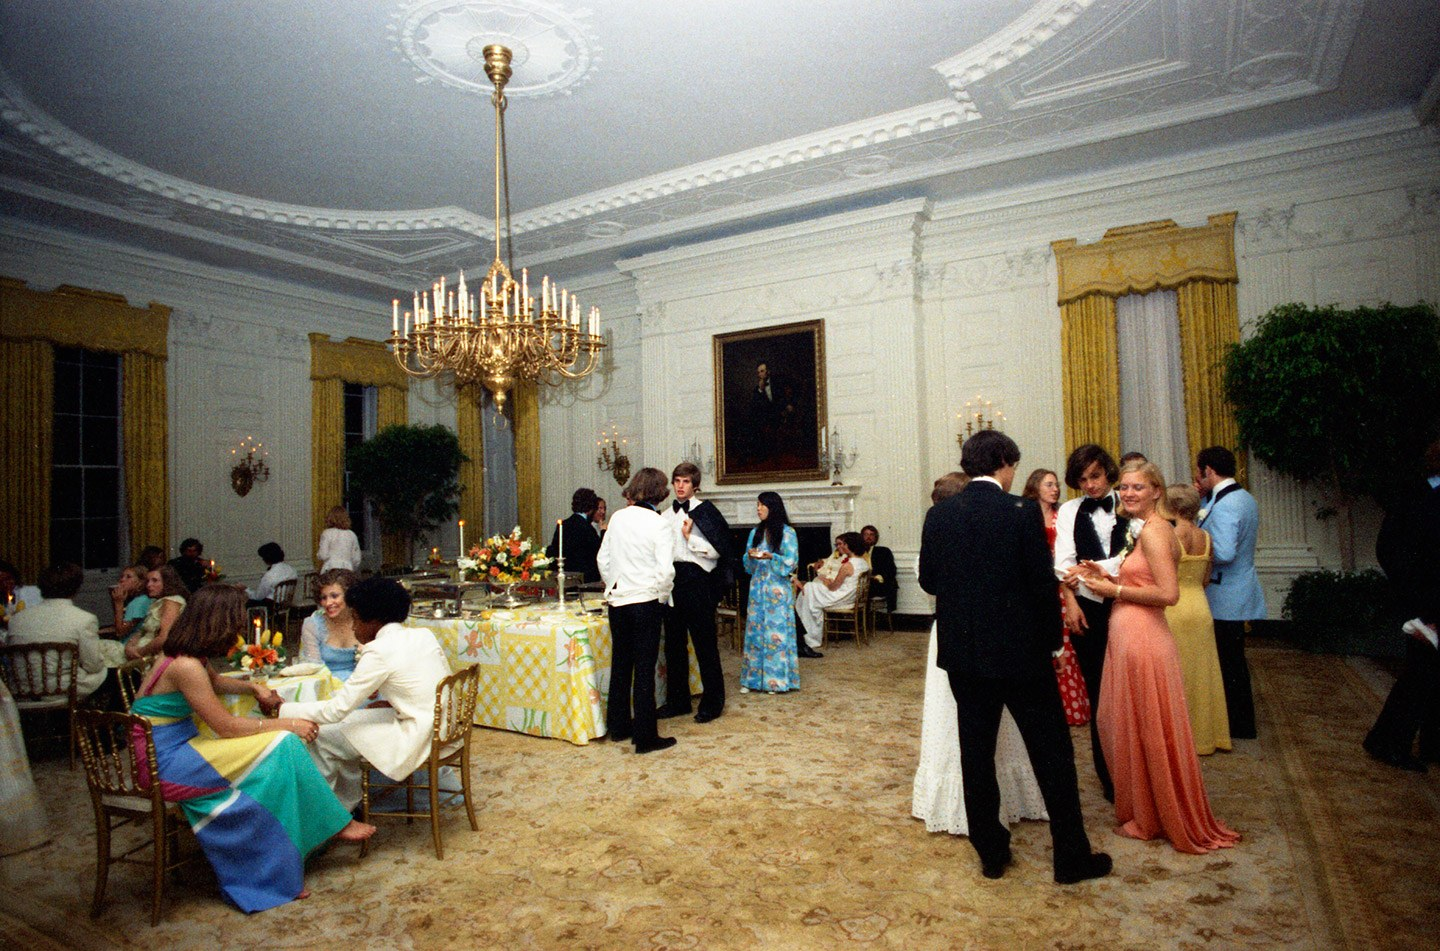 Prom at the White House